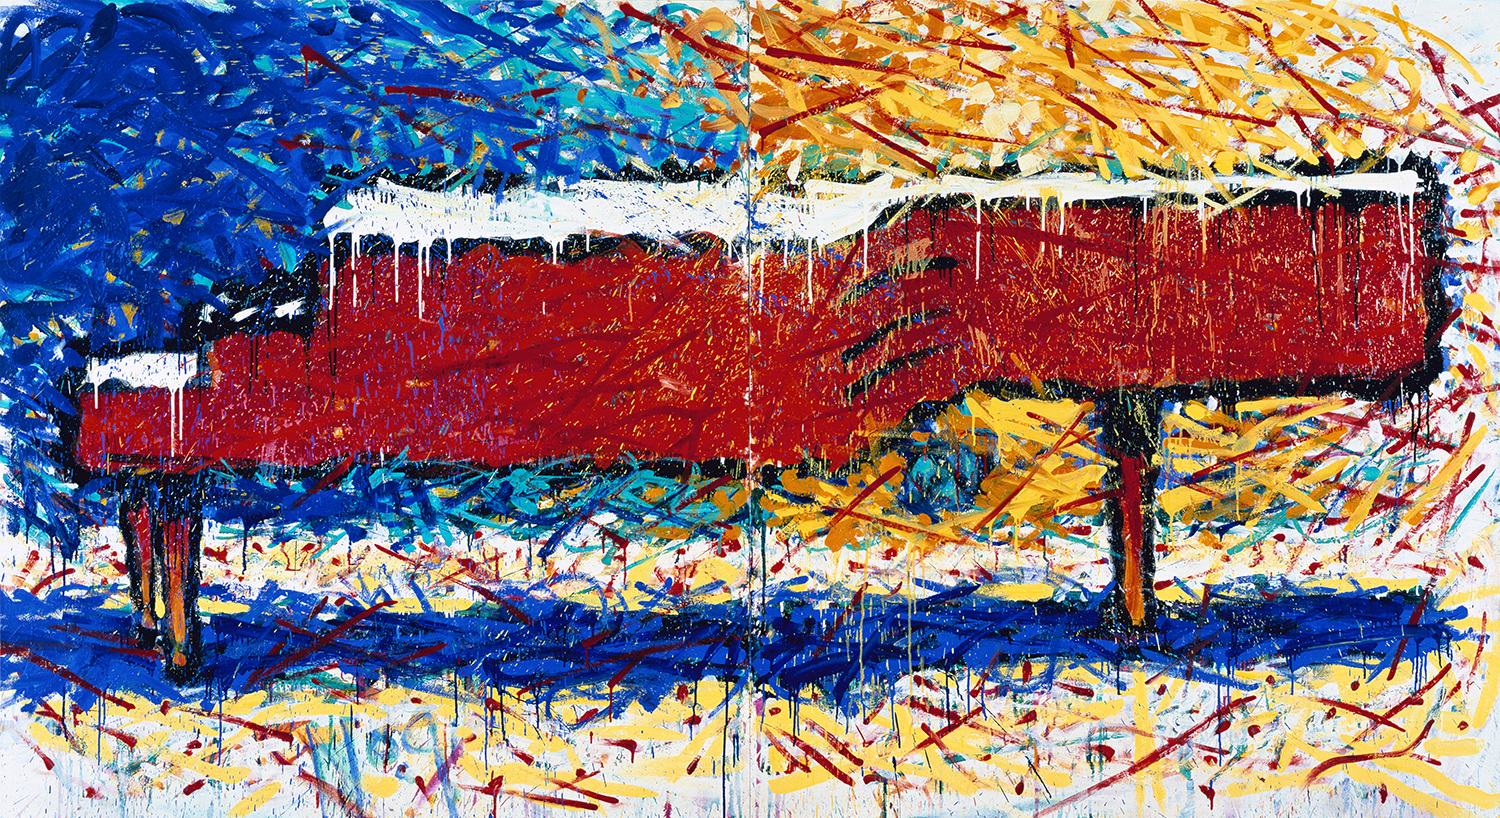 Piano No. 9 | oil and varnish on canvas | 72″ x 128″ | 1994